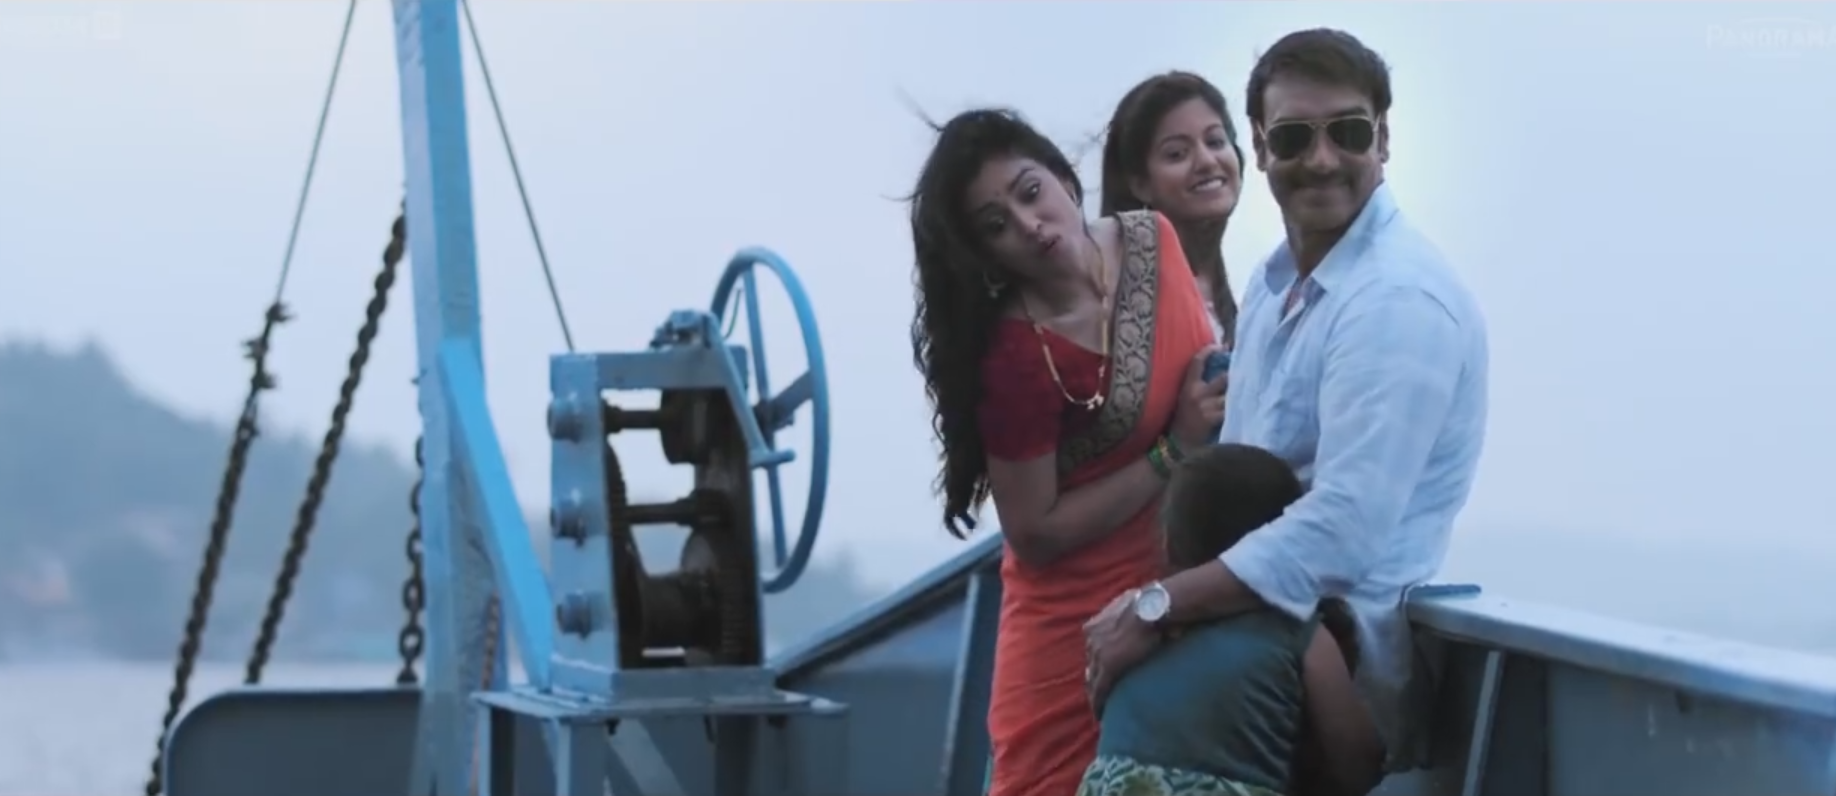 Watch : 'Drishyam' Official Trailer Starring Ajay Devgn, Tabu and Shriya Saran